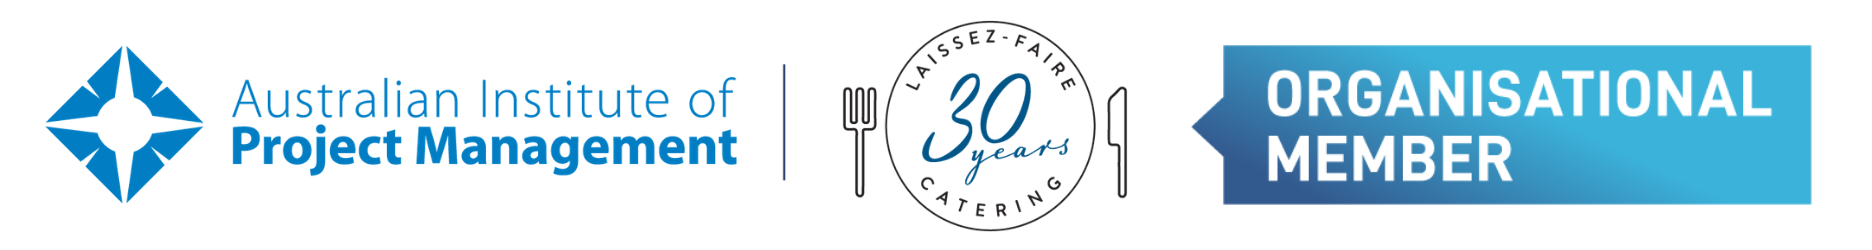 Laissez-faire Catering Membership